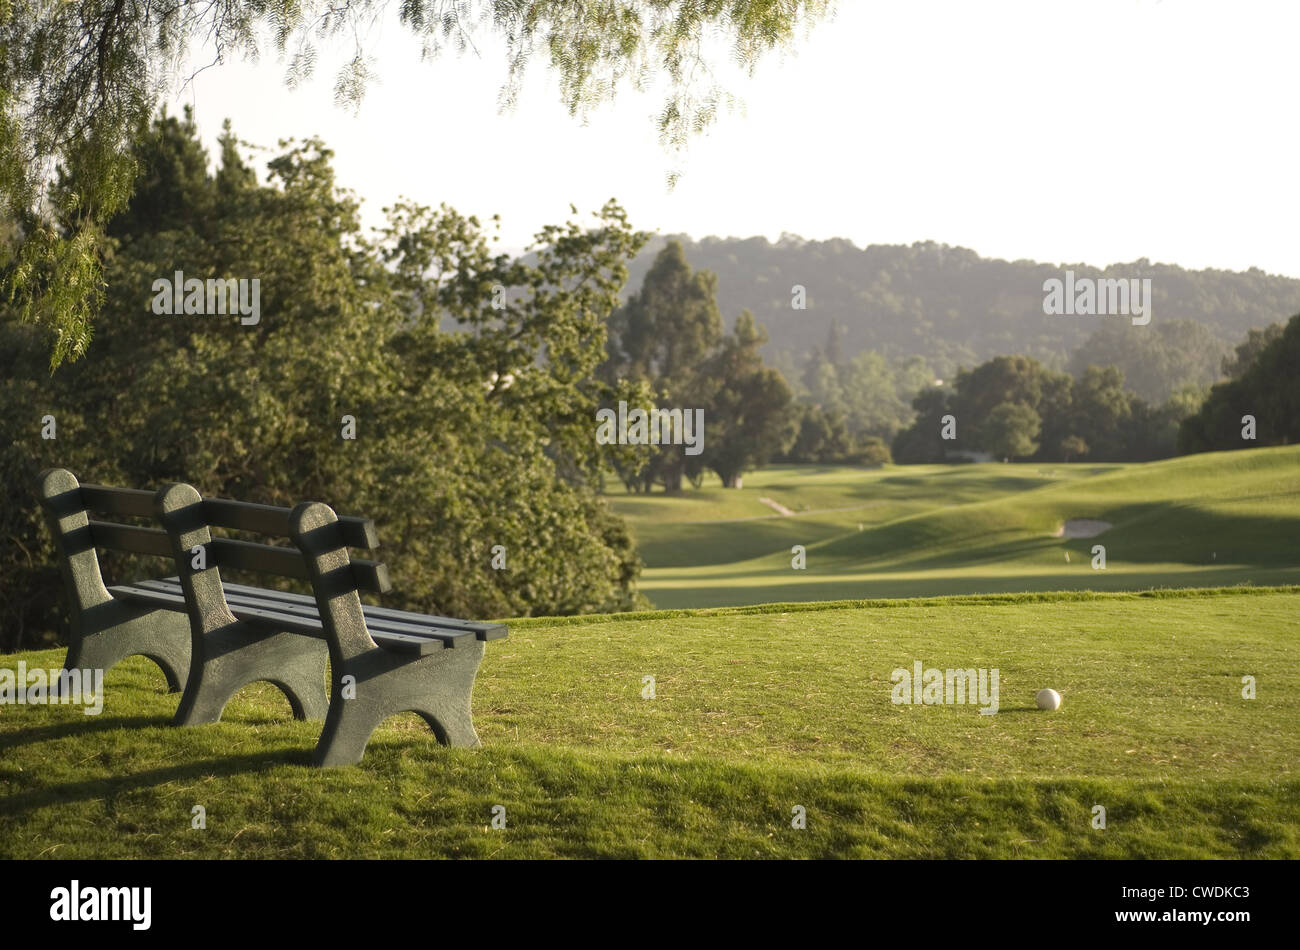 Golf Tee & BenchStock Photo